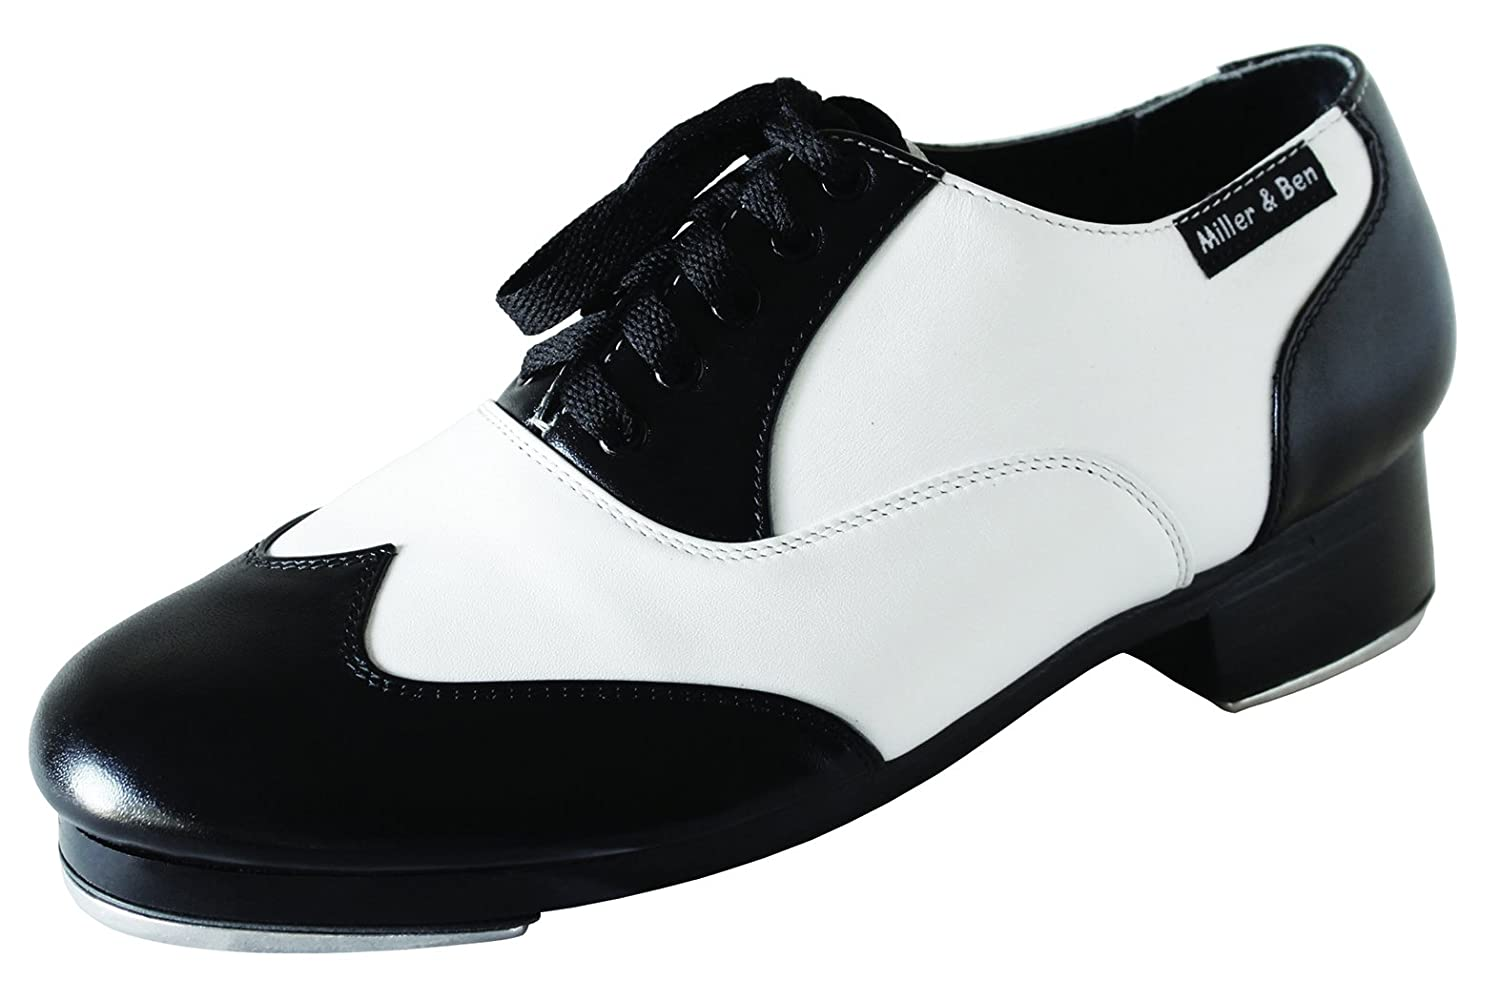 1950s Shoe Styles: Heels, Flats, Sandals, Saddles Shoes Miller & Ben Tap Shoes Jazz-Tap Master Black & White - STANDARD SIZES $285.00 AT vintagedancer.com